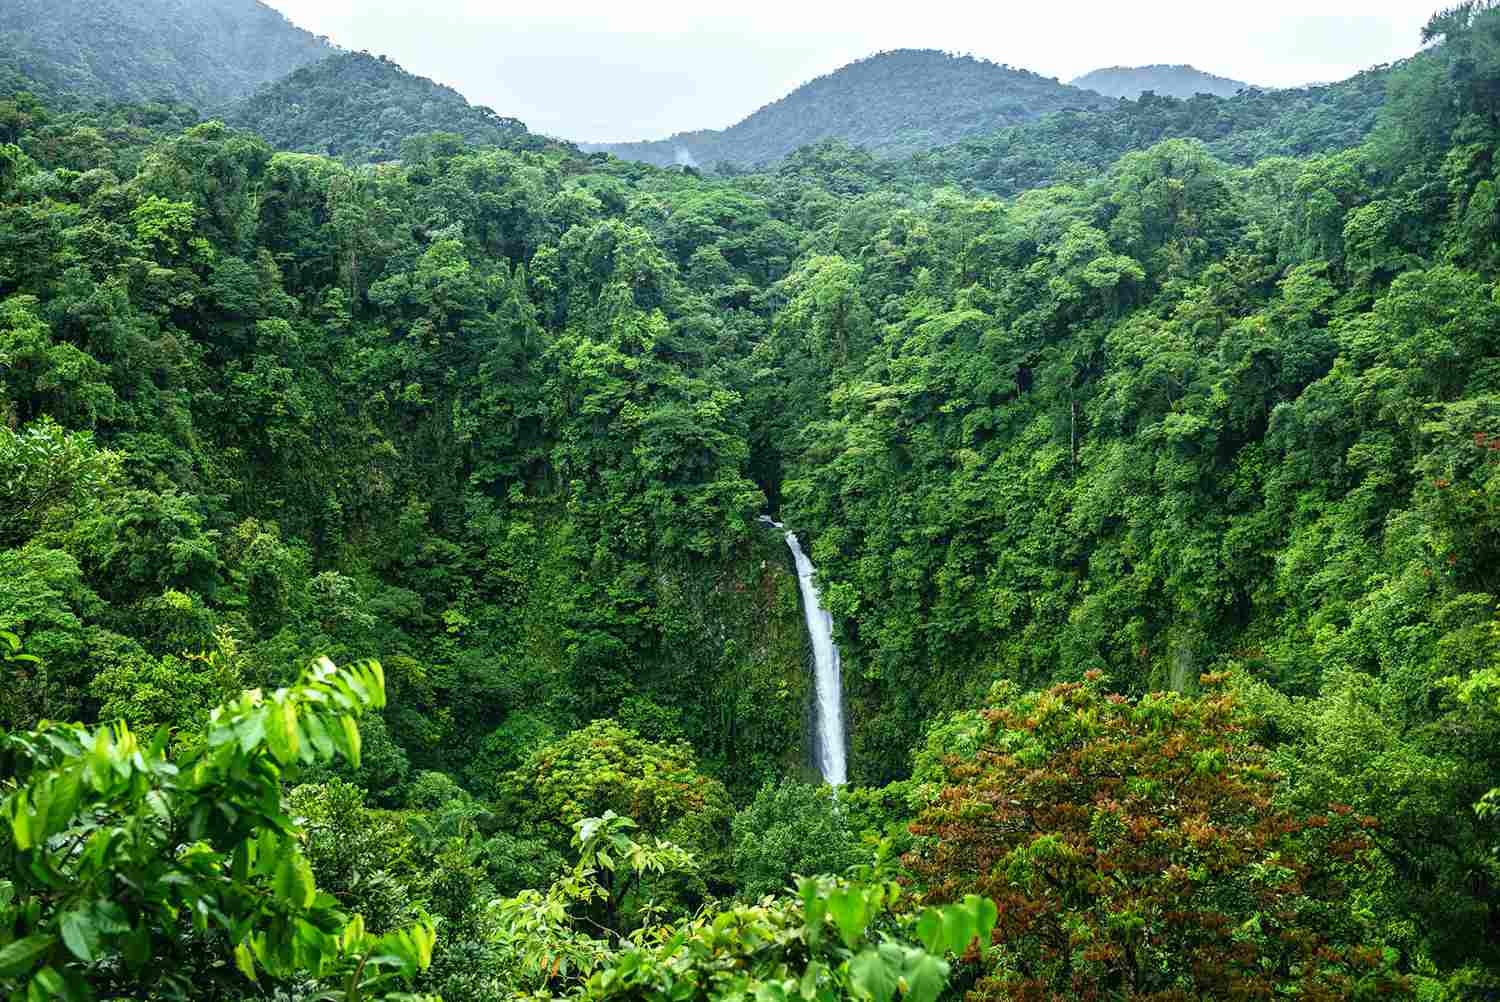 Costa Rica, Arenal Volcano National Park With the Waterfall of La Fortuna